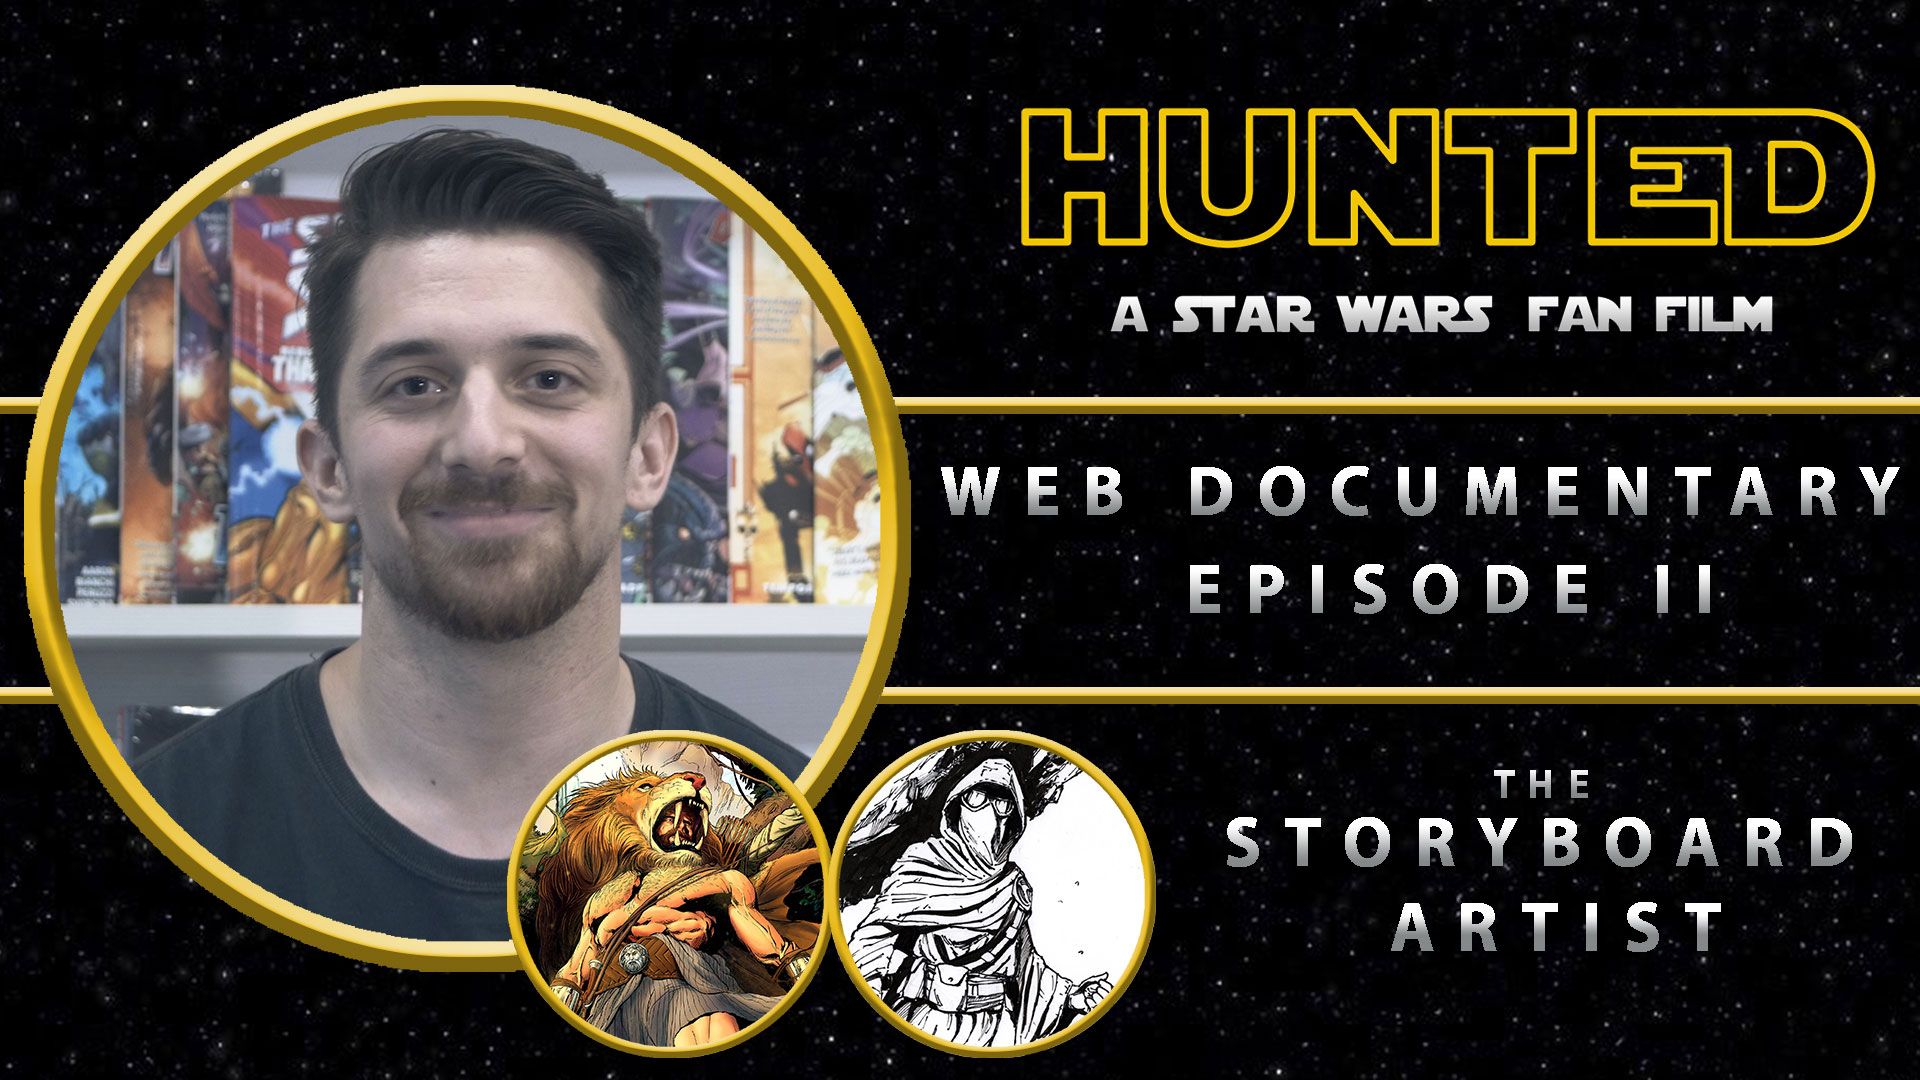 HUNTED Web-Documentary Episode II: The Storyboard Artist